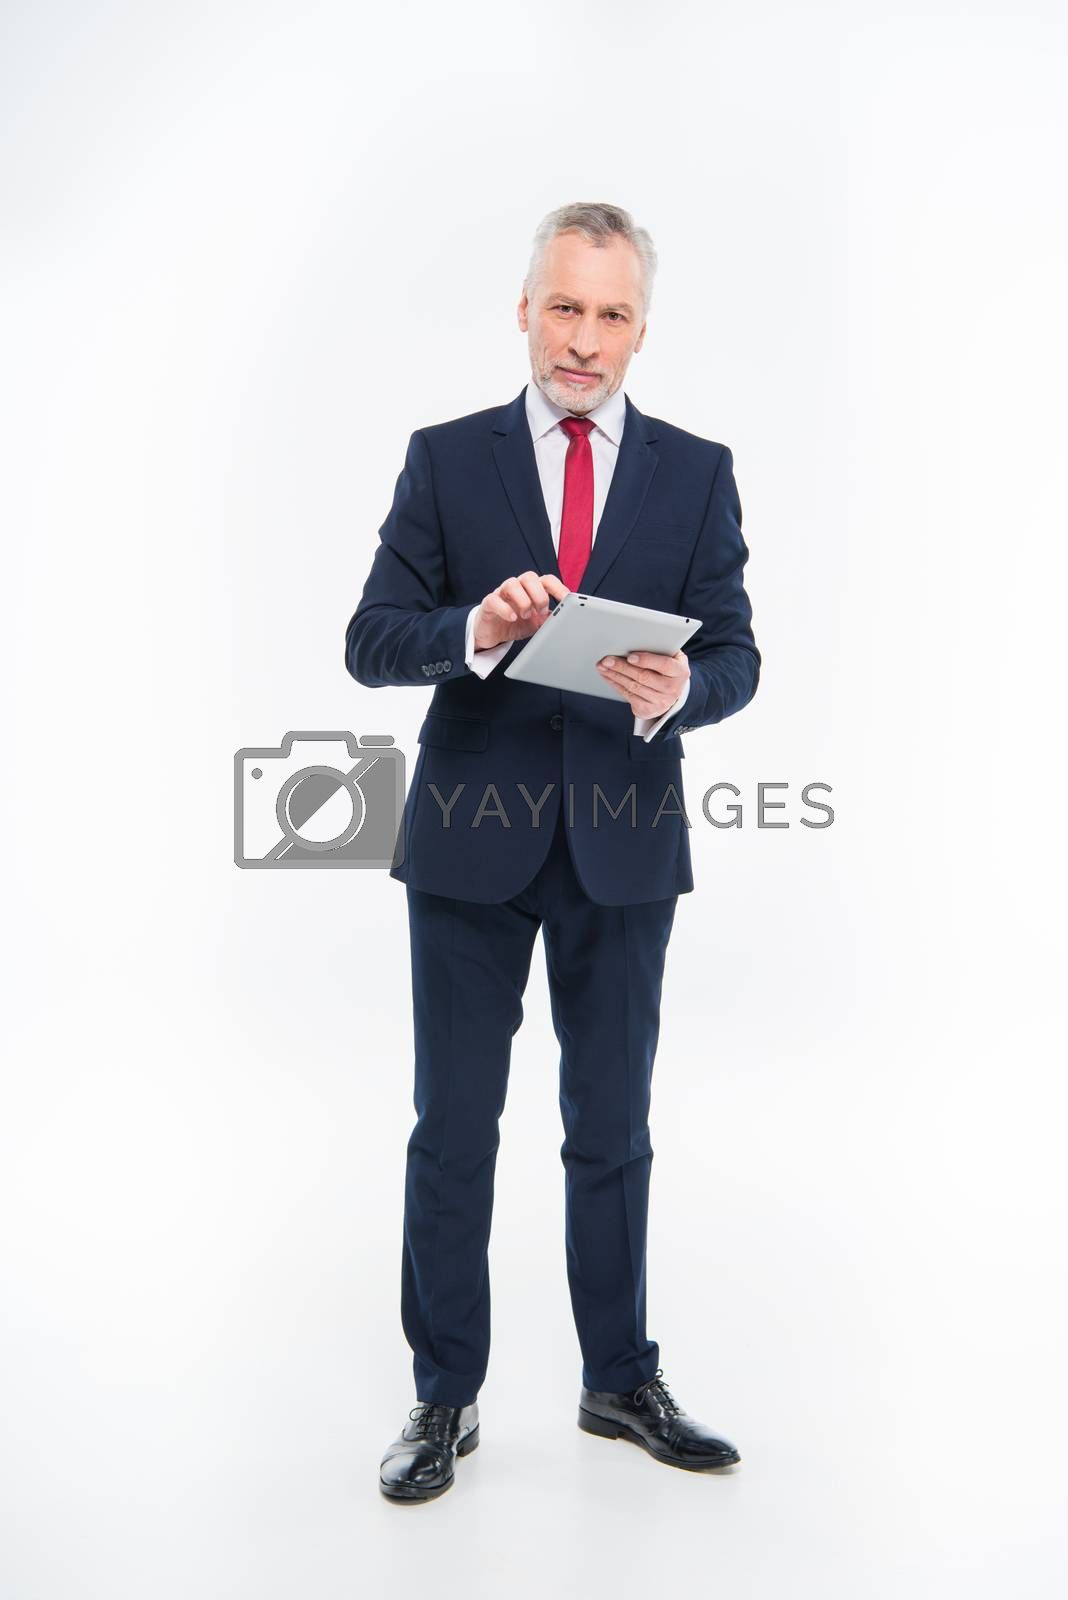 Royalty free image of Businessman using digital tablet  by LightFieldStudios